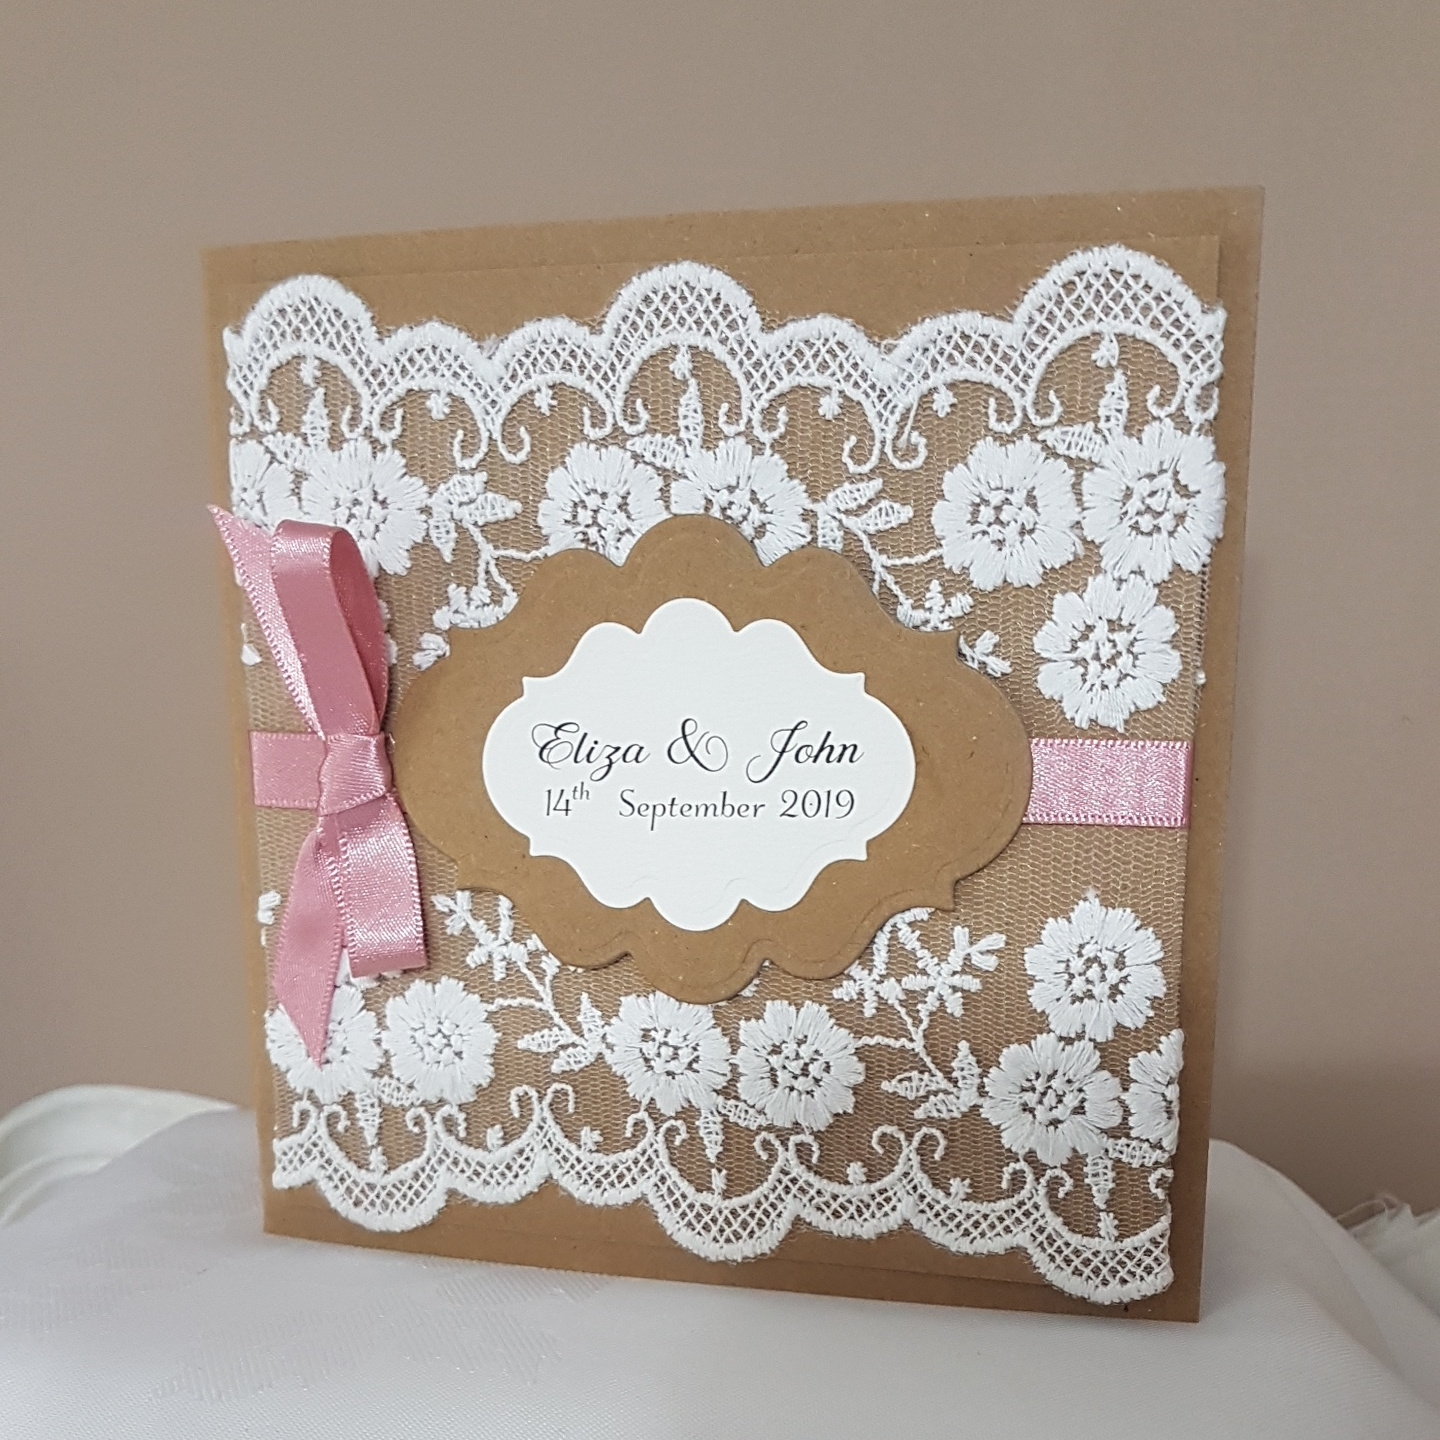 Rustic Lace pocketfold invitation